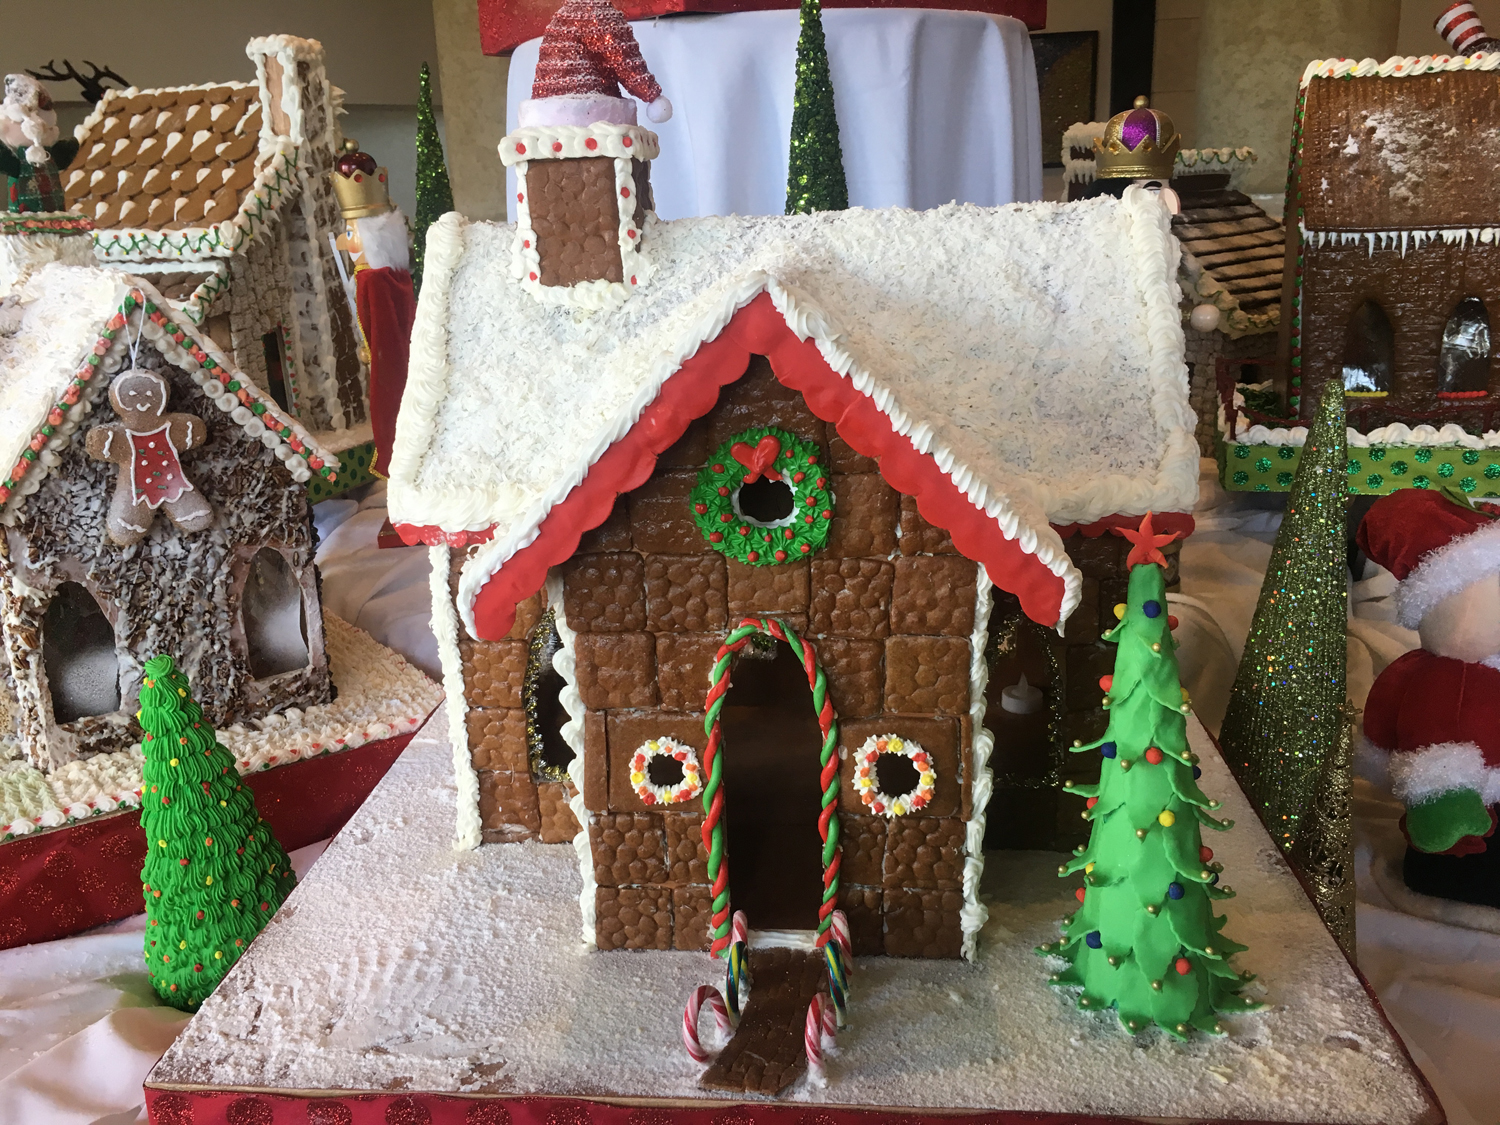 Gingerbread house display at The Wyndham Grand Rio Mar Beach Resort & Spa, in Rio Grande, Puerto Rico. (Photo credit: The Wyndham Grand Rio Mar Beach Resort & Spa)